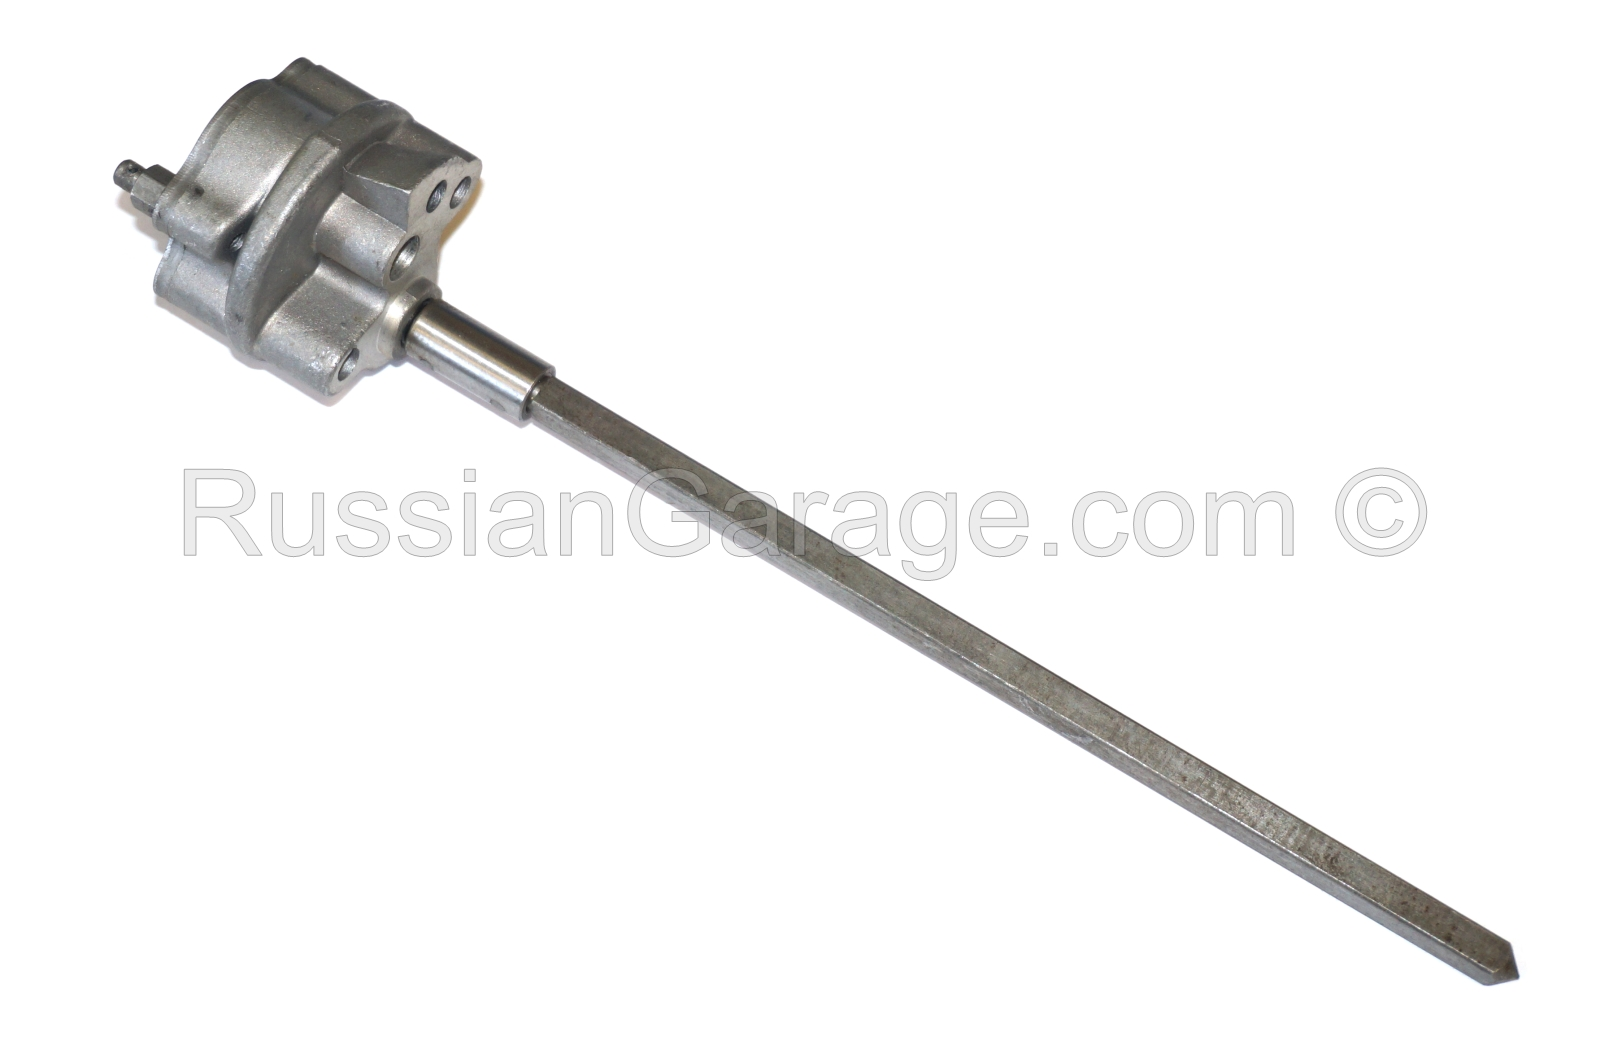 Oil pump URAL → Crankcase covers → RussianGarage.com